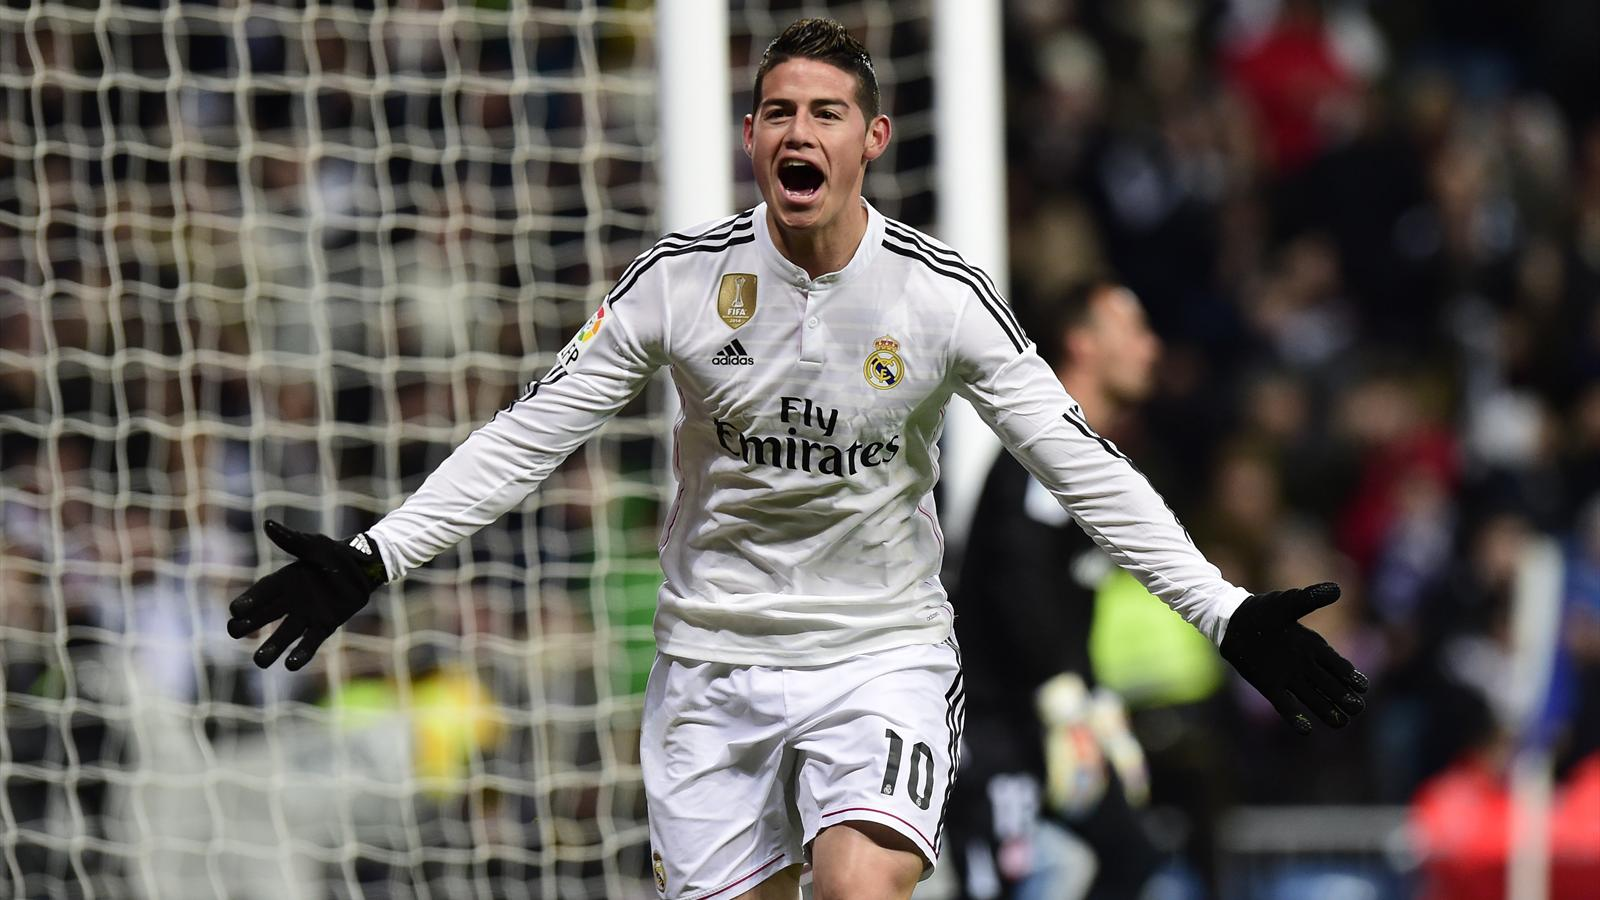 Liga - Real Madrid : James Rodriguez titulaire dimanche, Pepe attendu ...